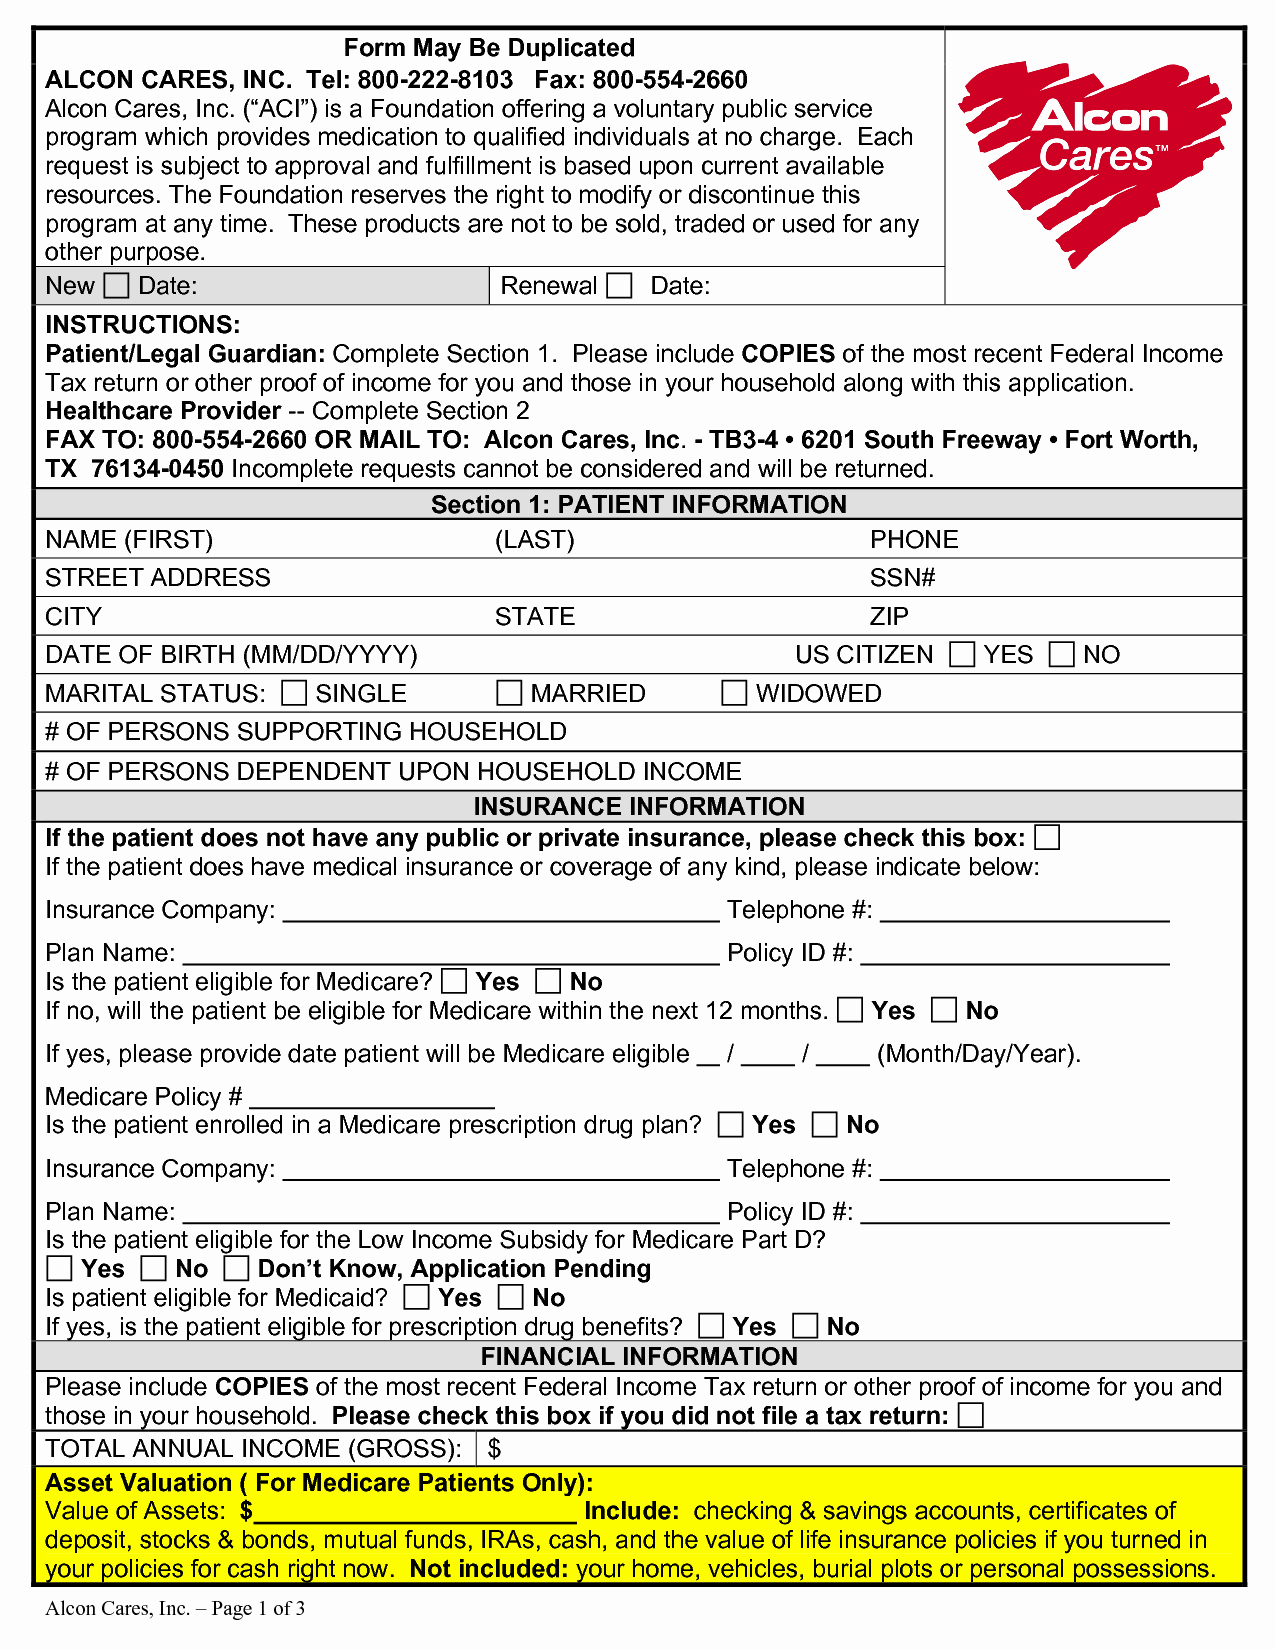 Ohio Medical Power Of Attorney Forms Free Printable - 8.18 - Free Printable Medical Power Of Attorney Forms